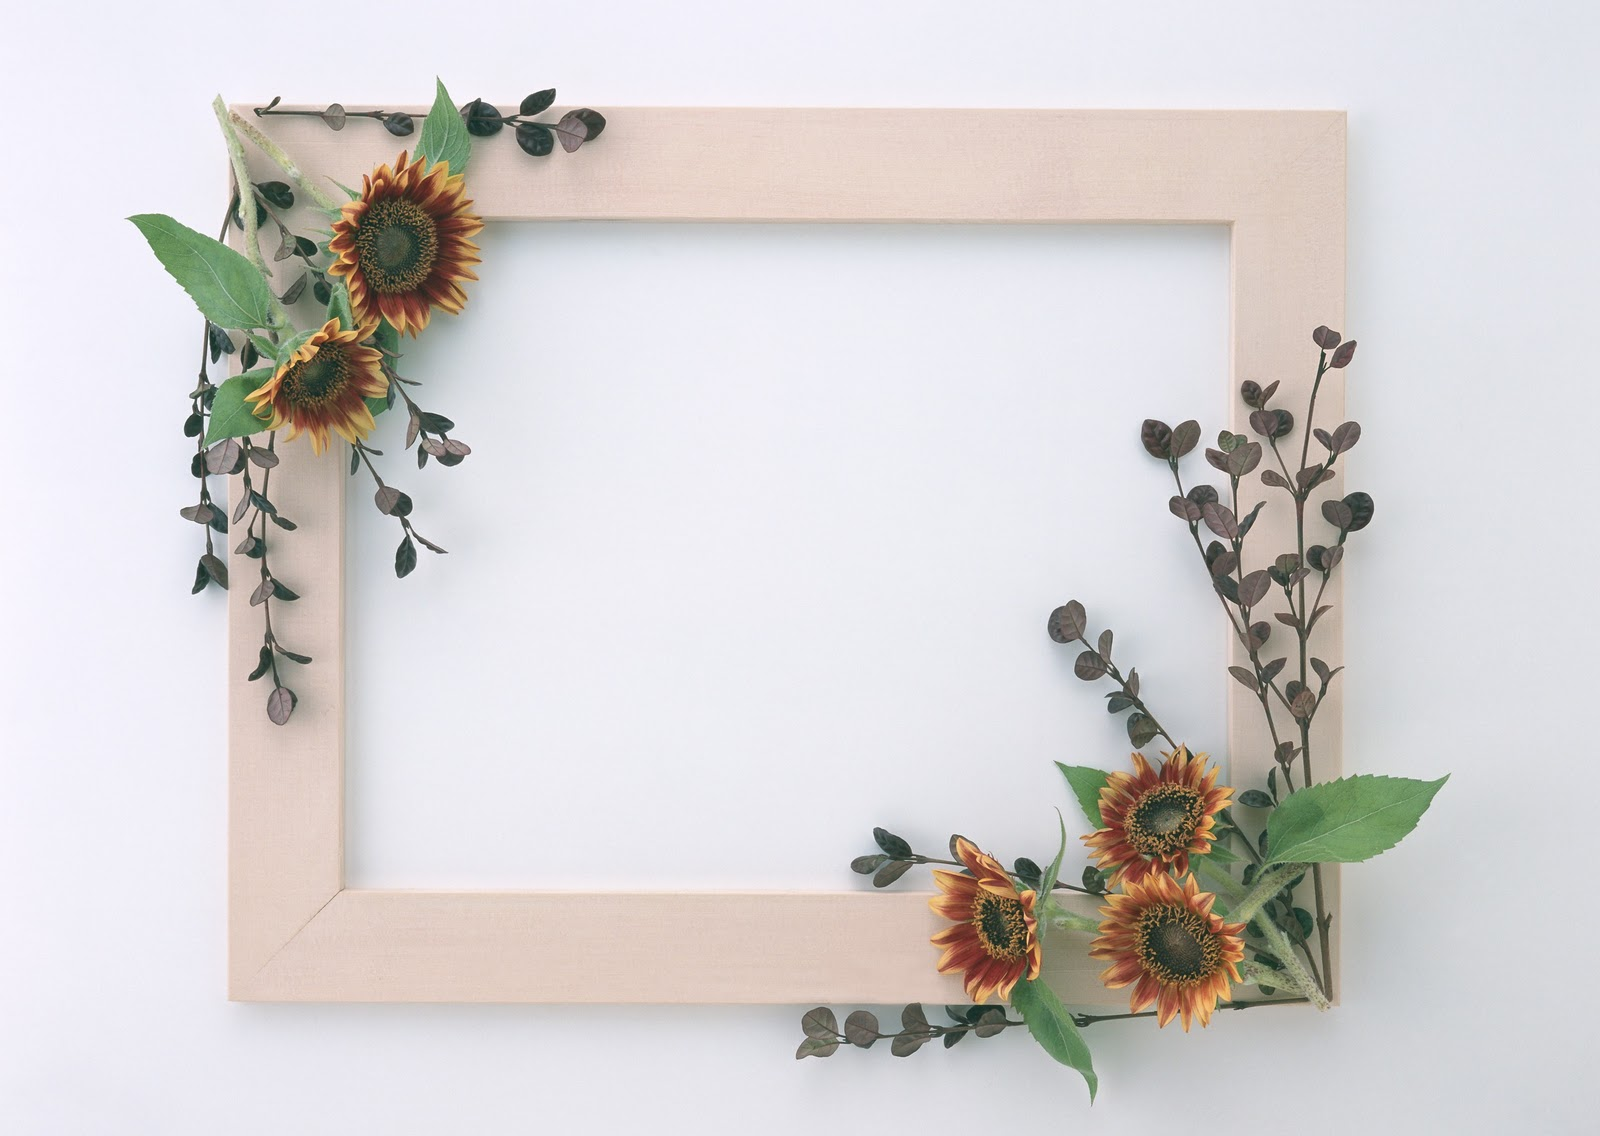 Beautiful Stylish Flowers Photo Frames | DOWNLOAD WALLPAPERS HD FREE